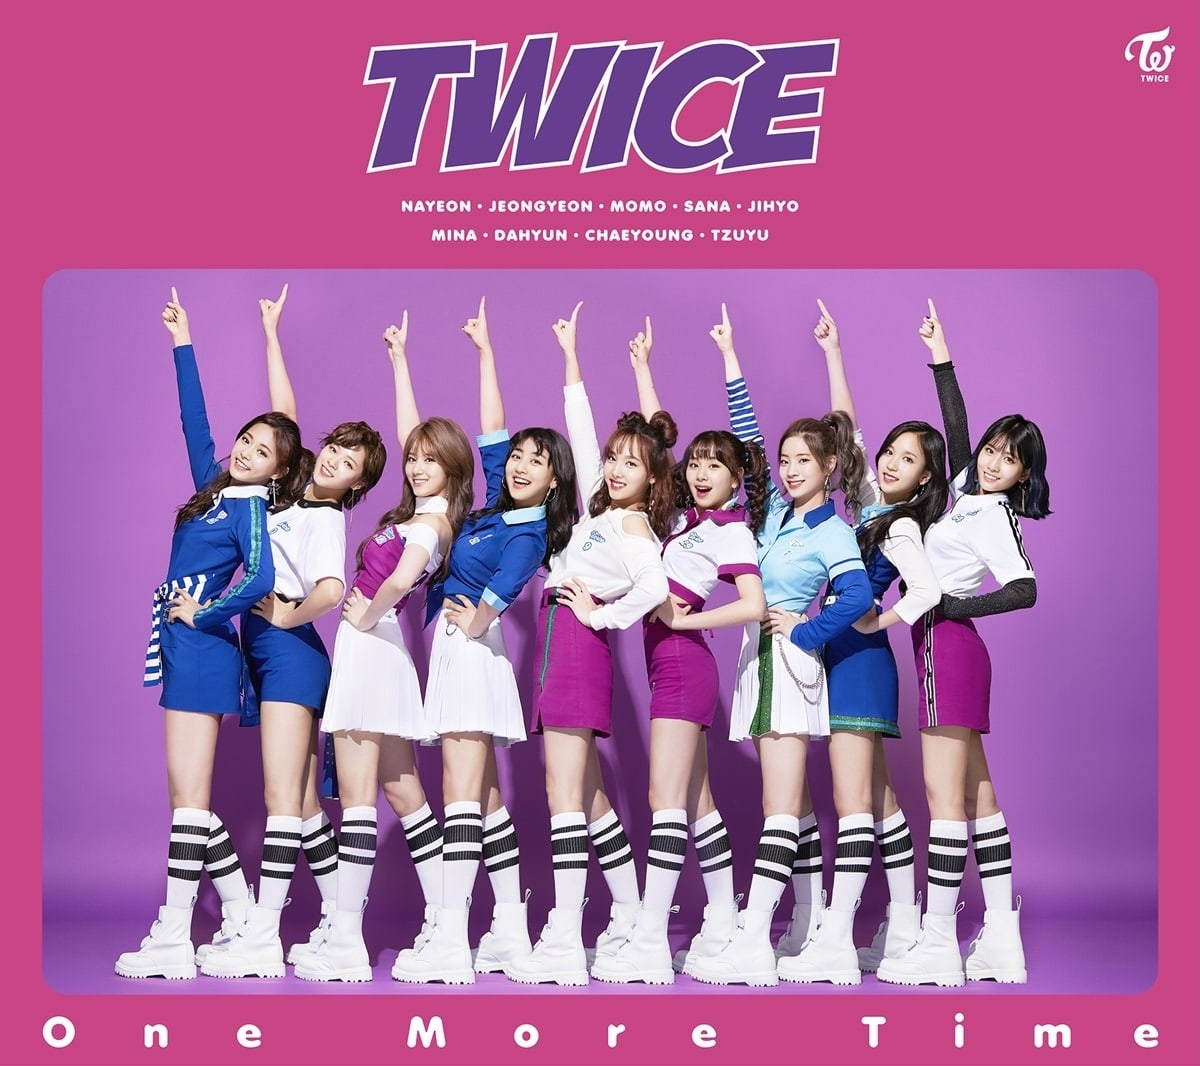 TWICE Records Highest First Week Sales For K-Pop Girl Group In Japan